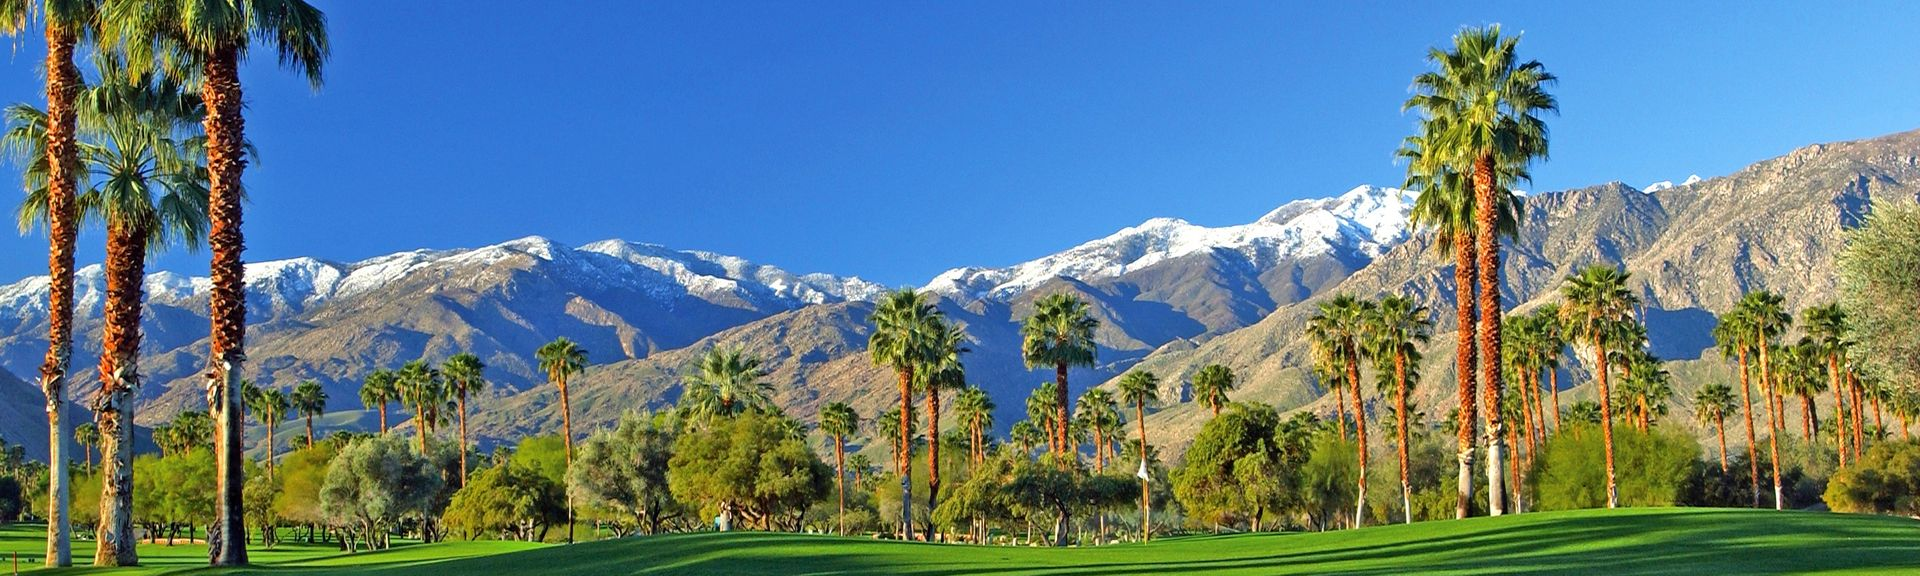 Palm Valley Country Club, Palm Desert, CA, USA